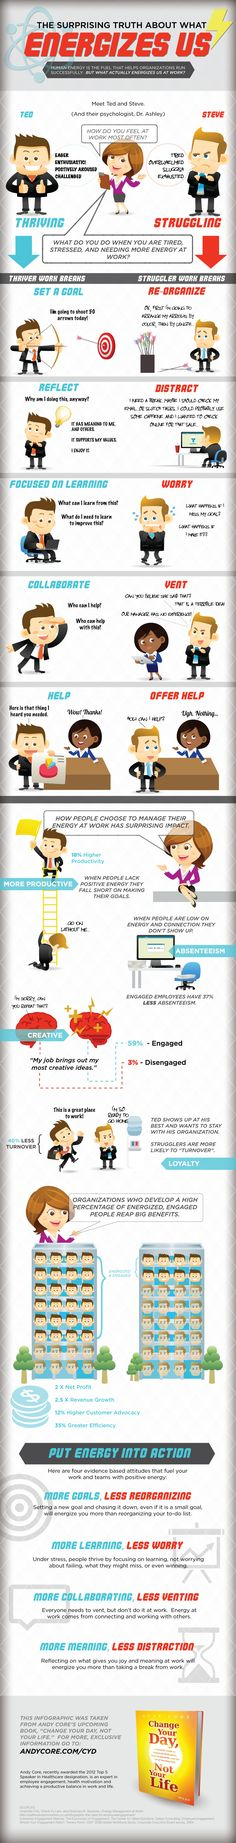 How to Feel More Energetic at Work and Increase Productivity